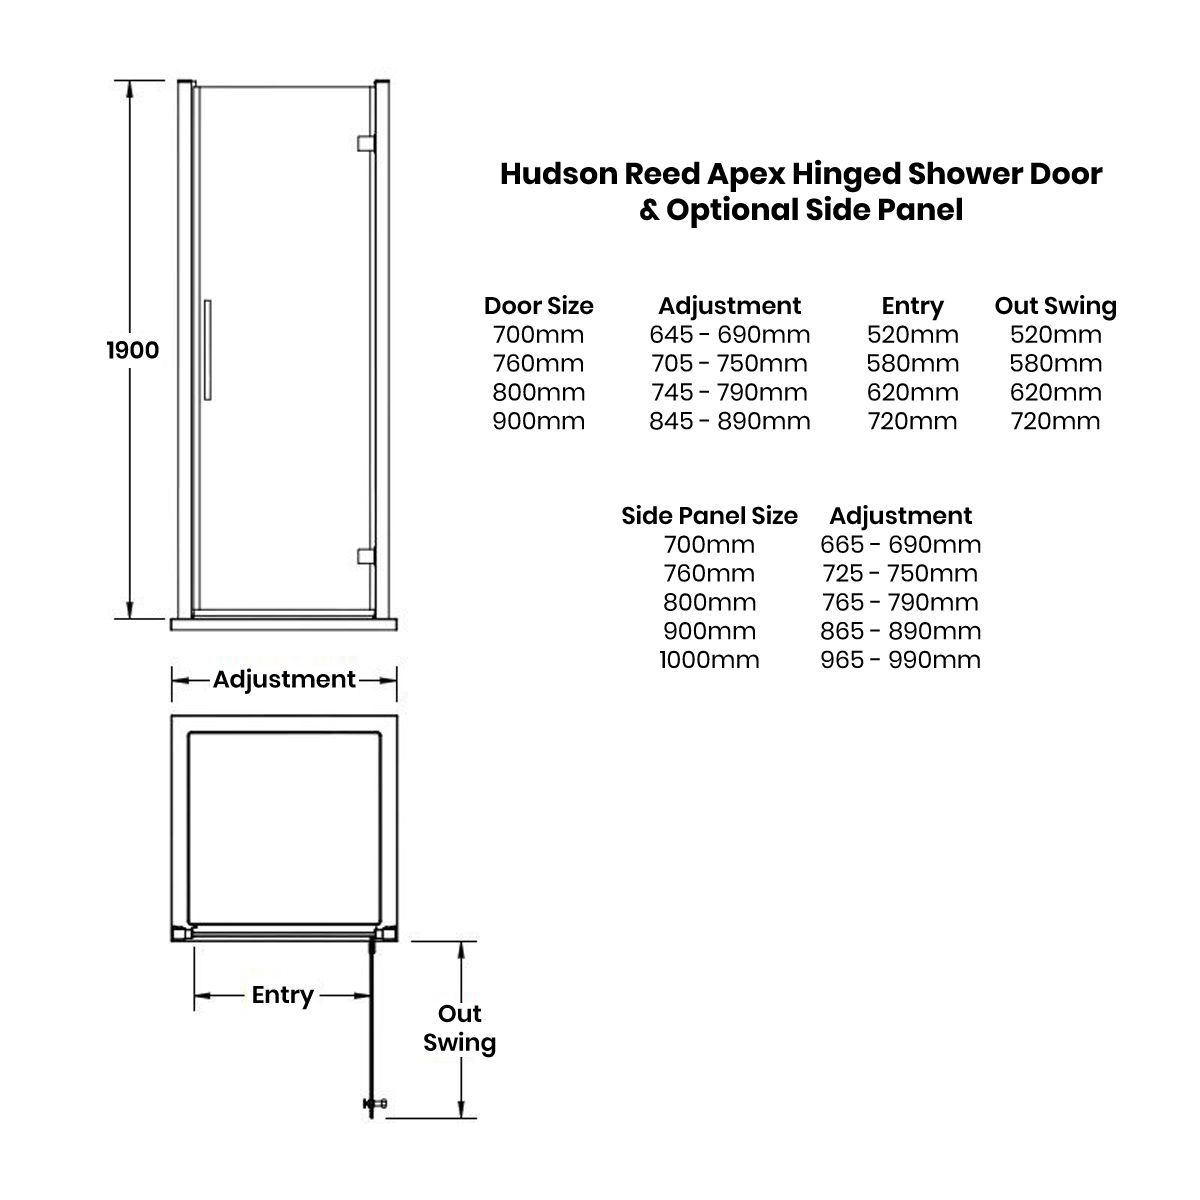 Hudson Reed Apex Hinged Shower Enclosure Dimensions